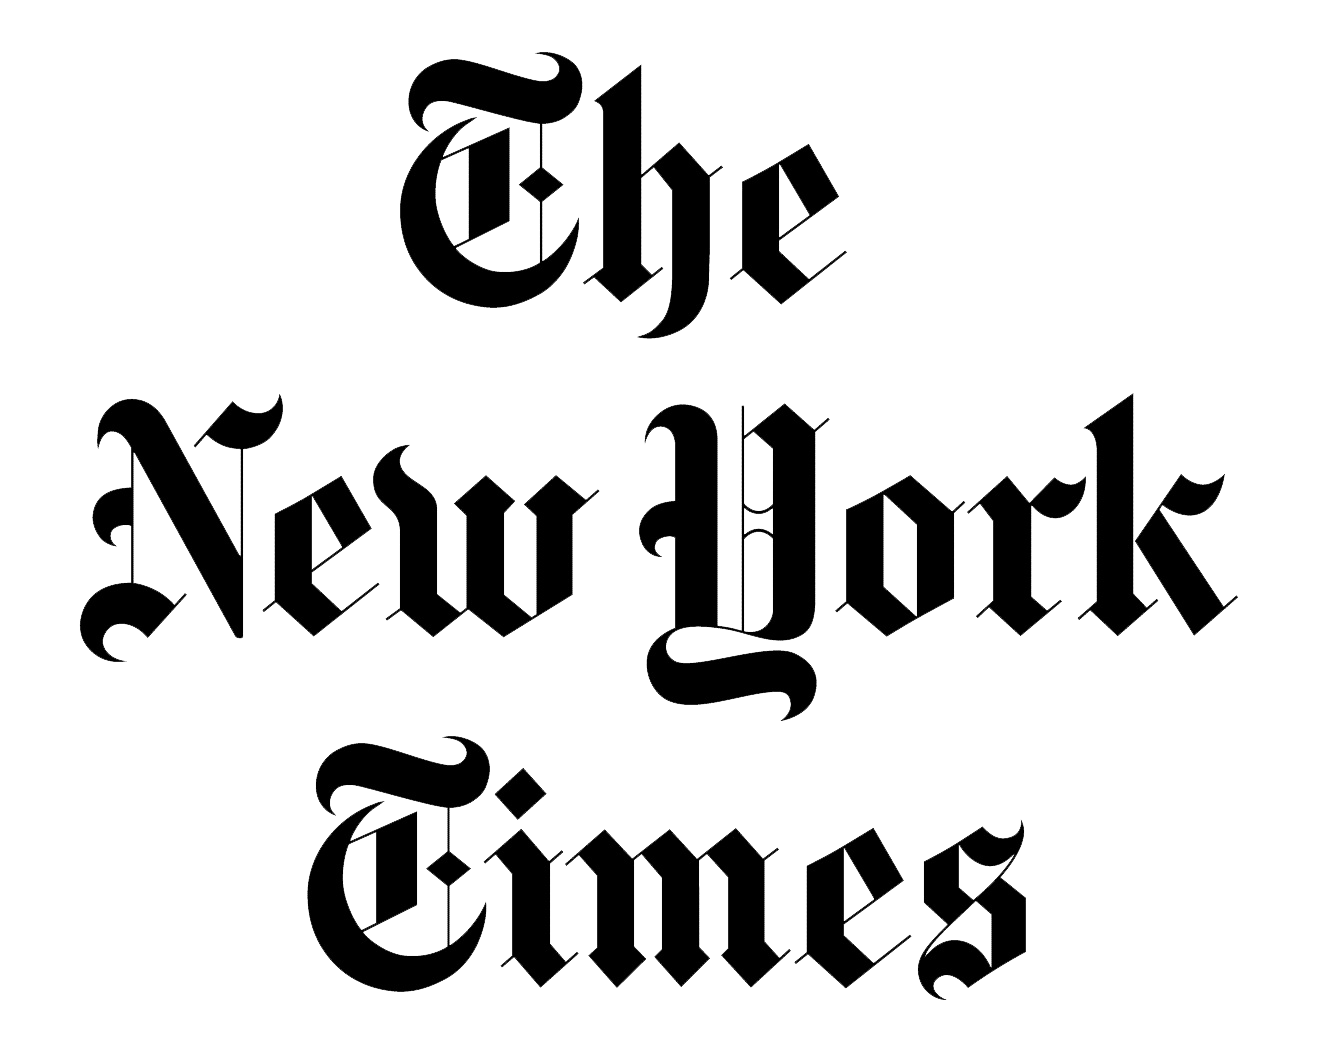 New_York_Times_logo_variation.png